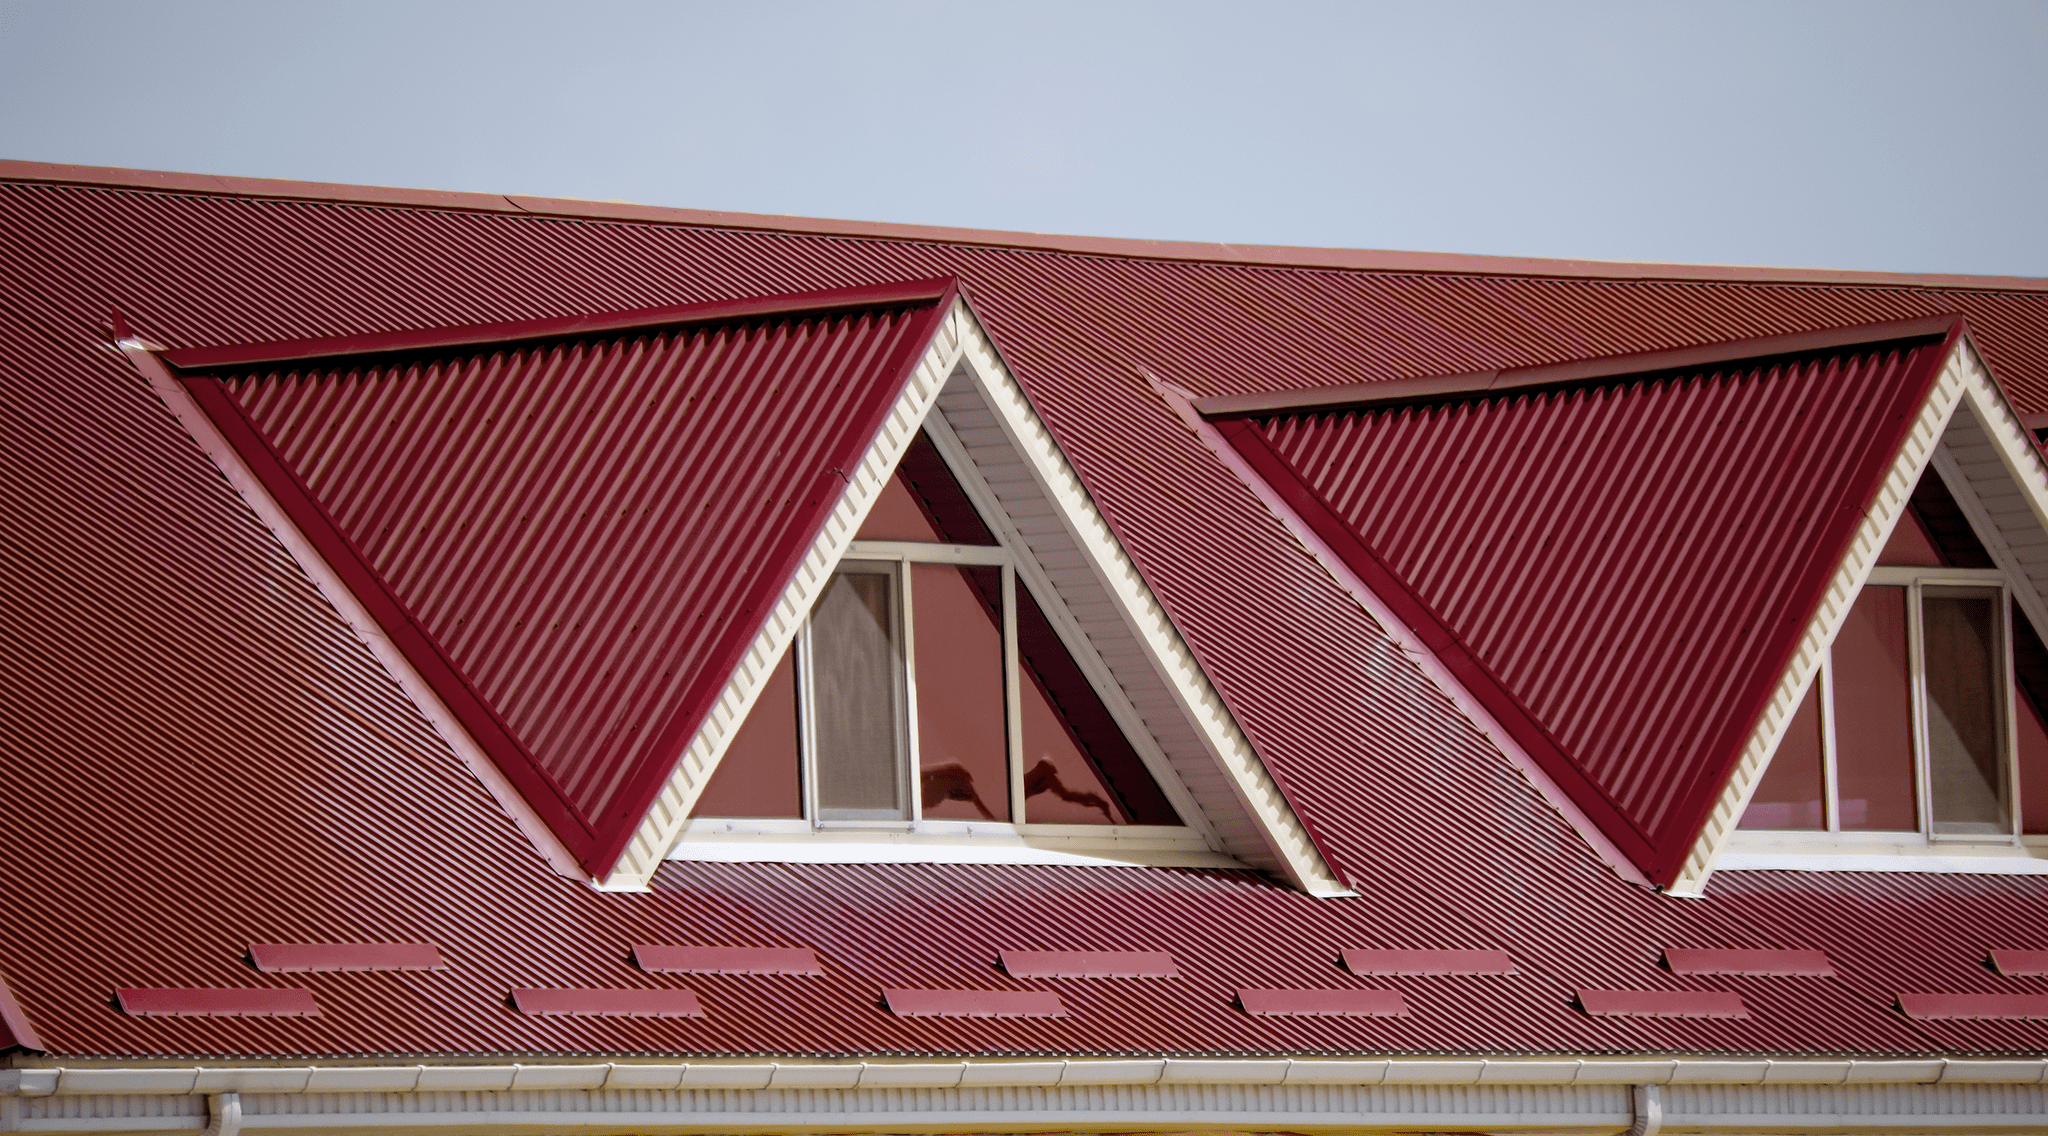 flexi-shield red roof paint